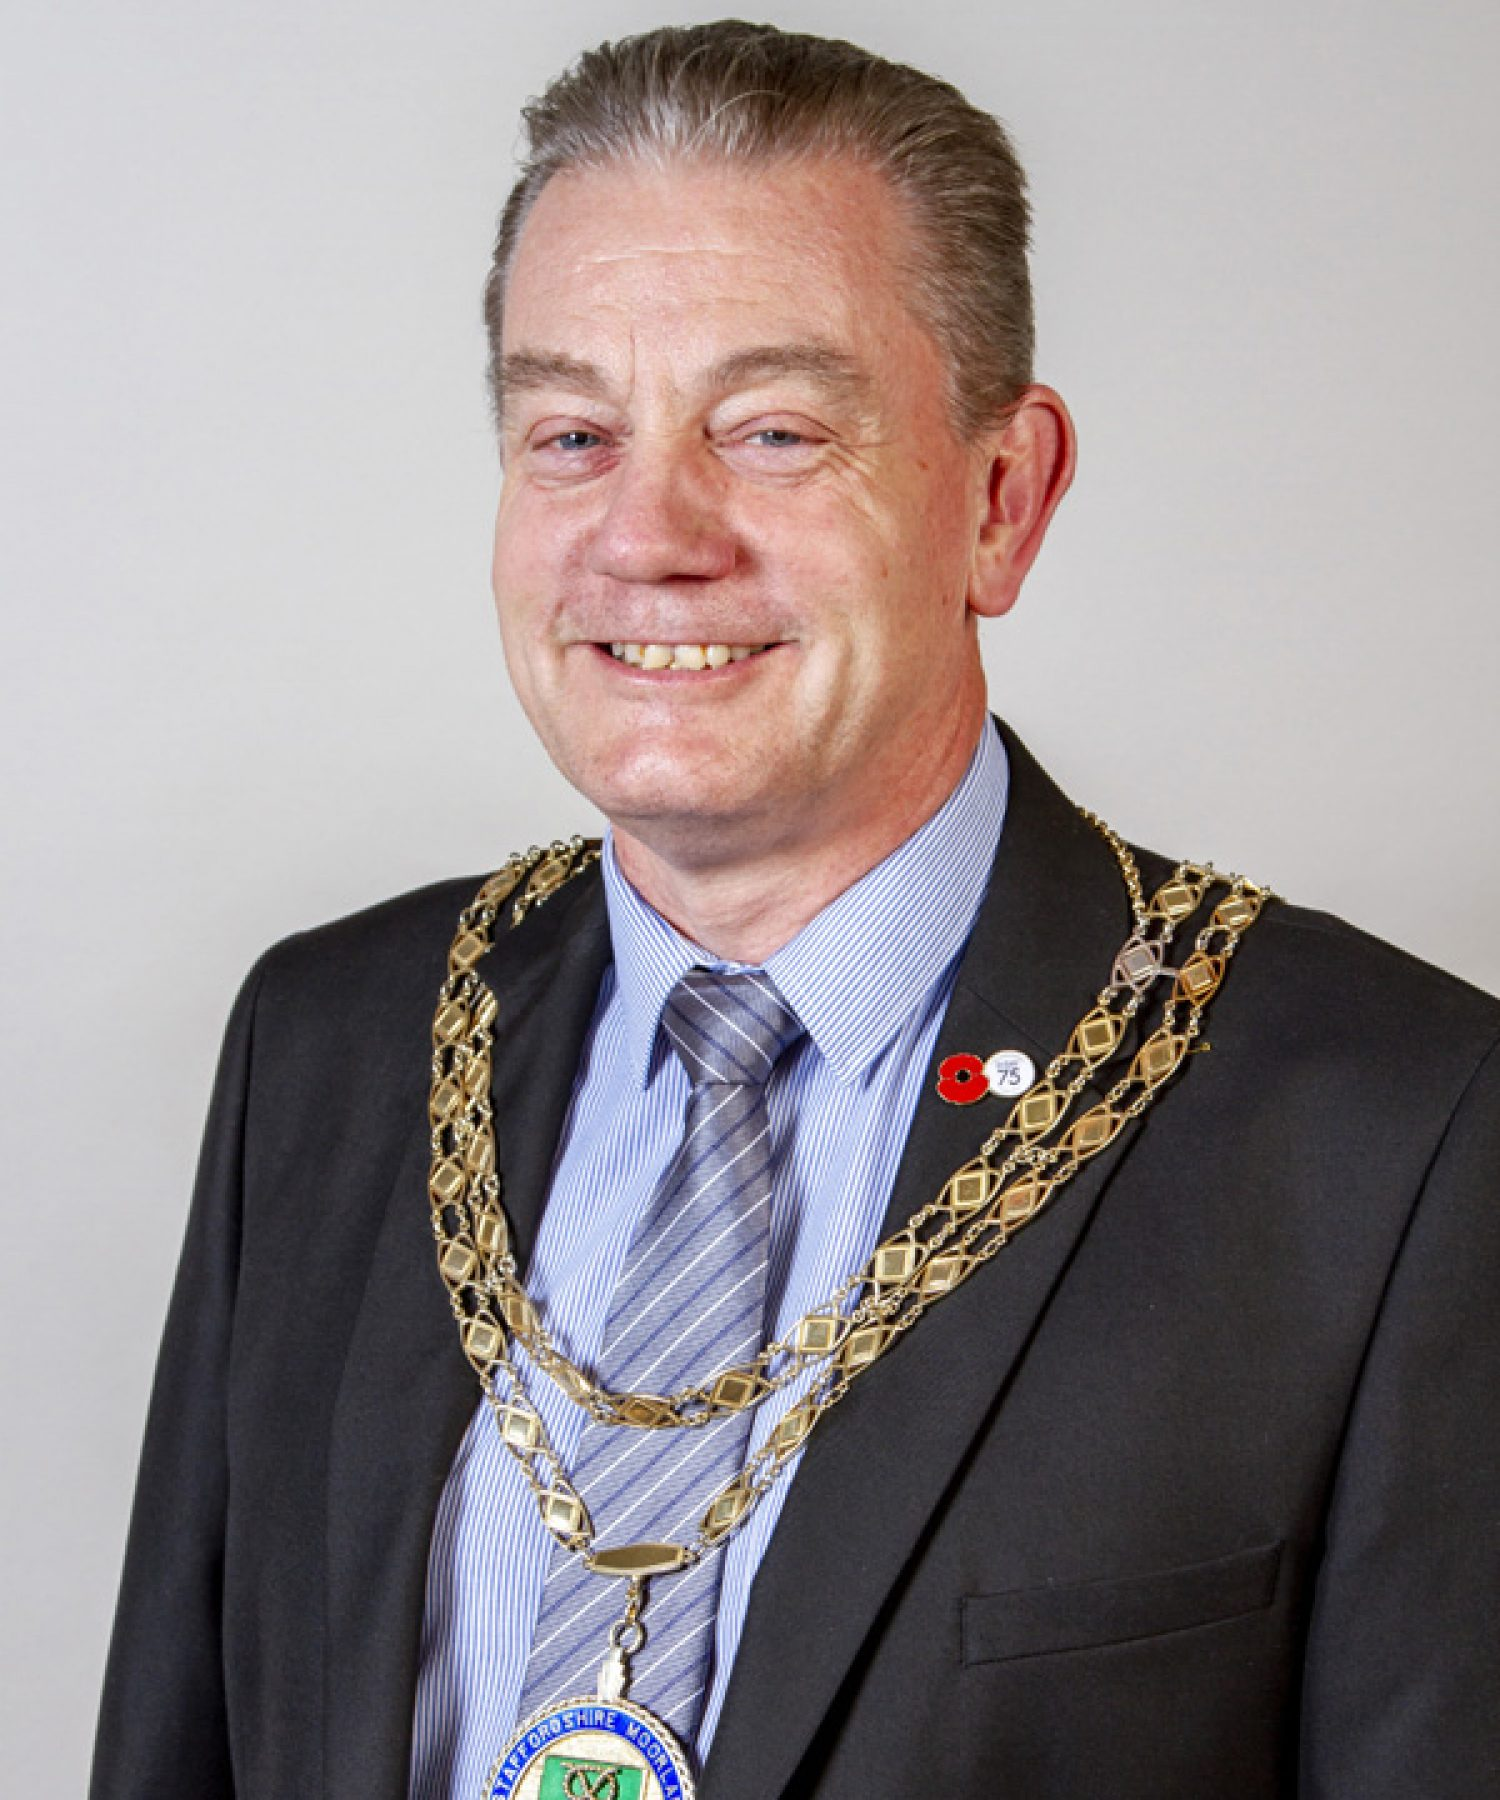 Image of Cllr Keith Flunder taken 2019